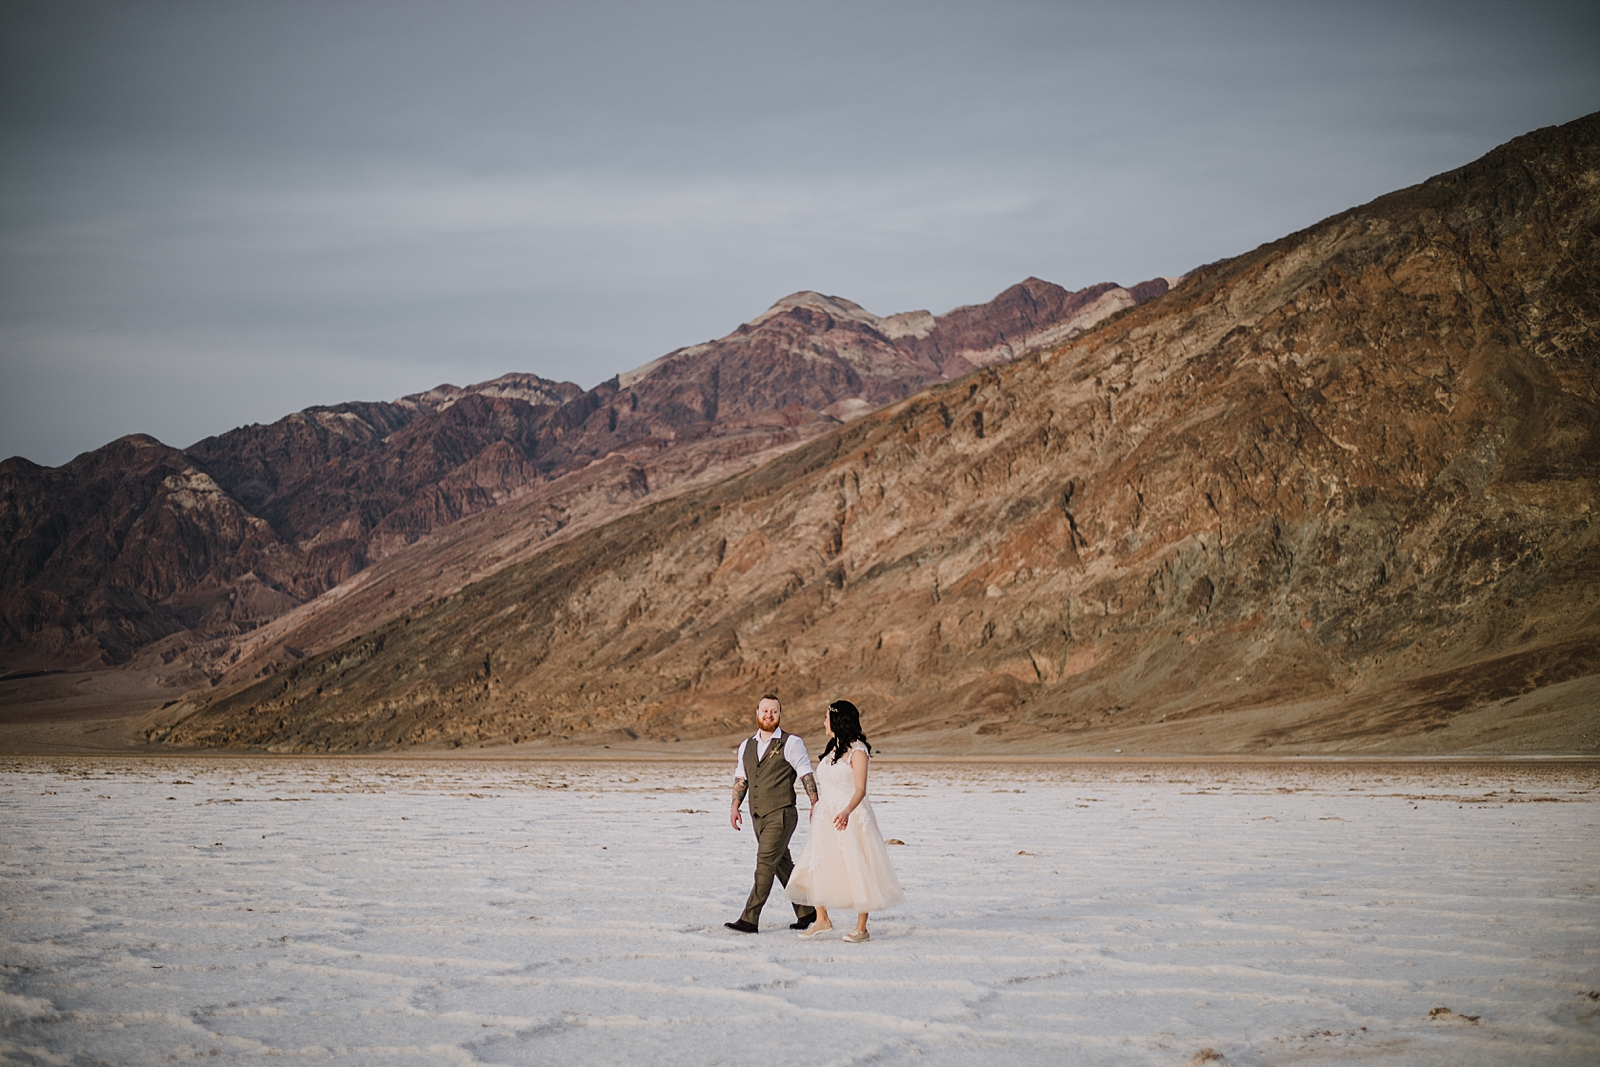 hiking across the salt flats, death valley national park elopement, elope in death valley, badwater basin elopement, hiking in death valley national park, sunset at badwater basin